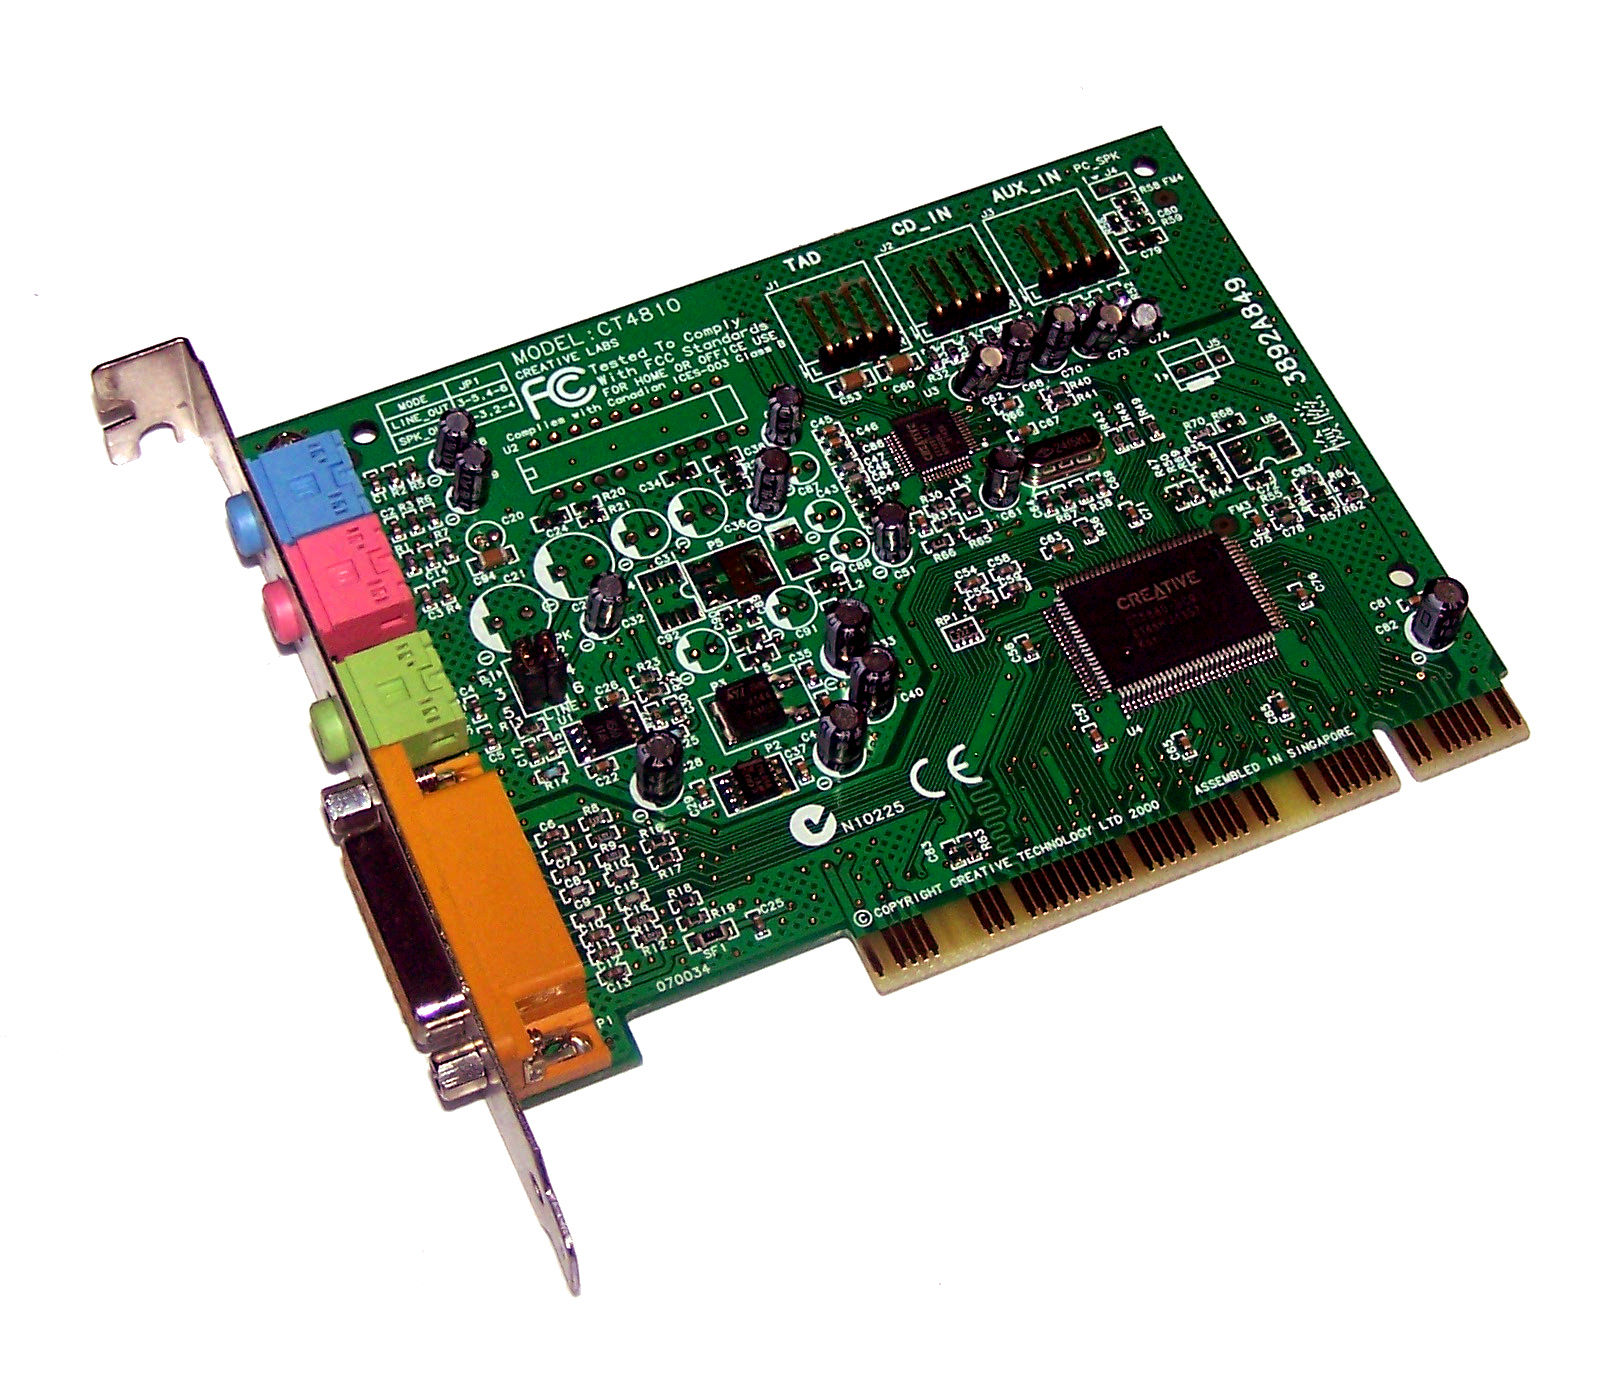 Creative CT4810 drivers - Nodevice